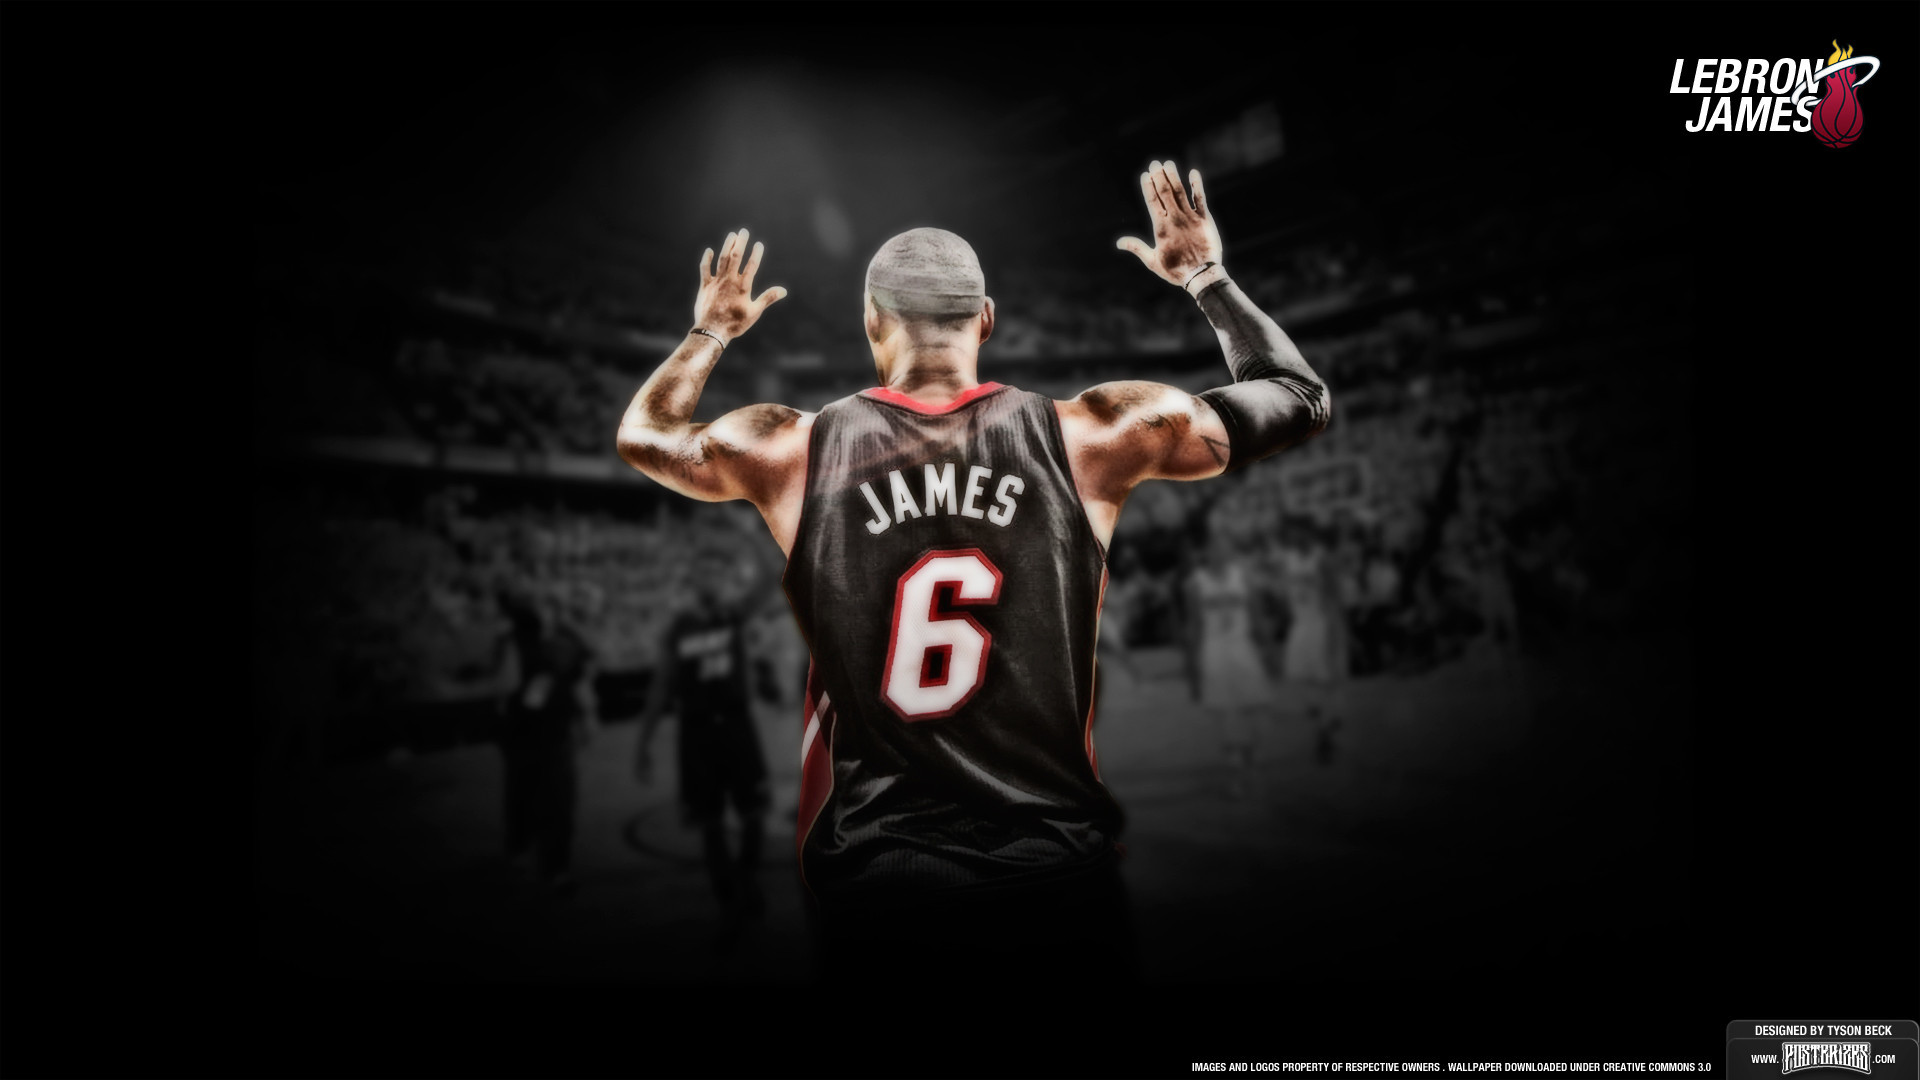 Lebron james hd wallpaper 78 images 1920x1080 lebron james fulfilled request 1920x1080 need iphone 6s plus wallpaper background for iphone6splus follow iphone 6s plus 3wallpapers voltagebd Image collections